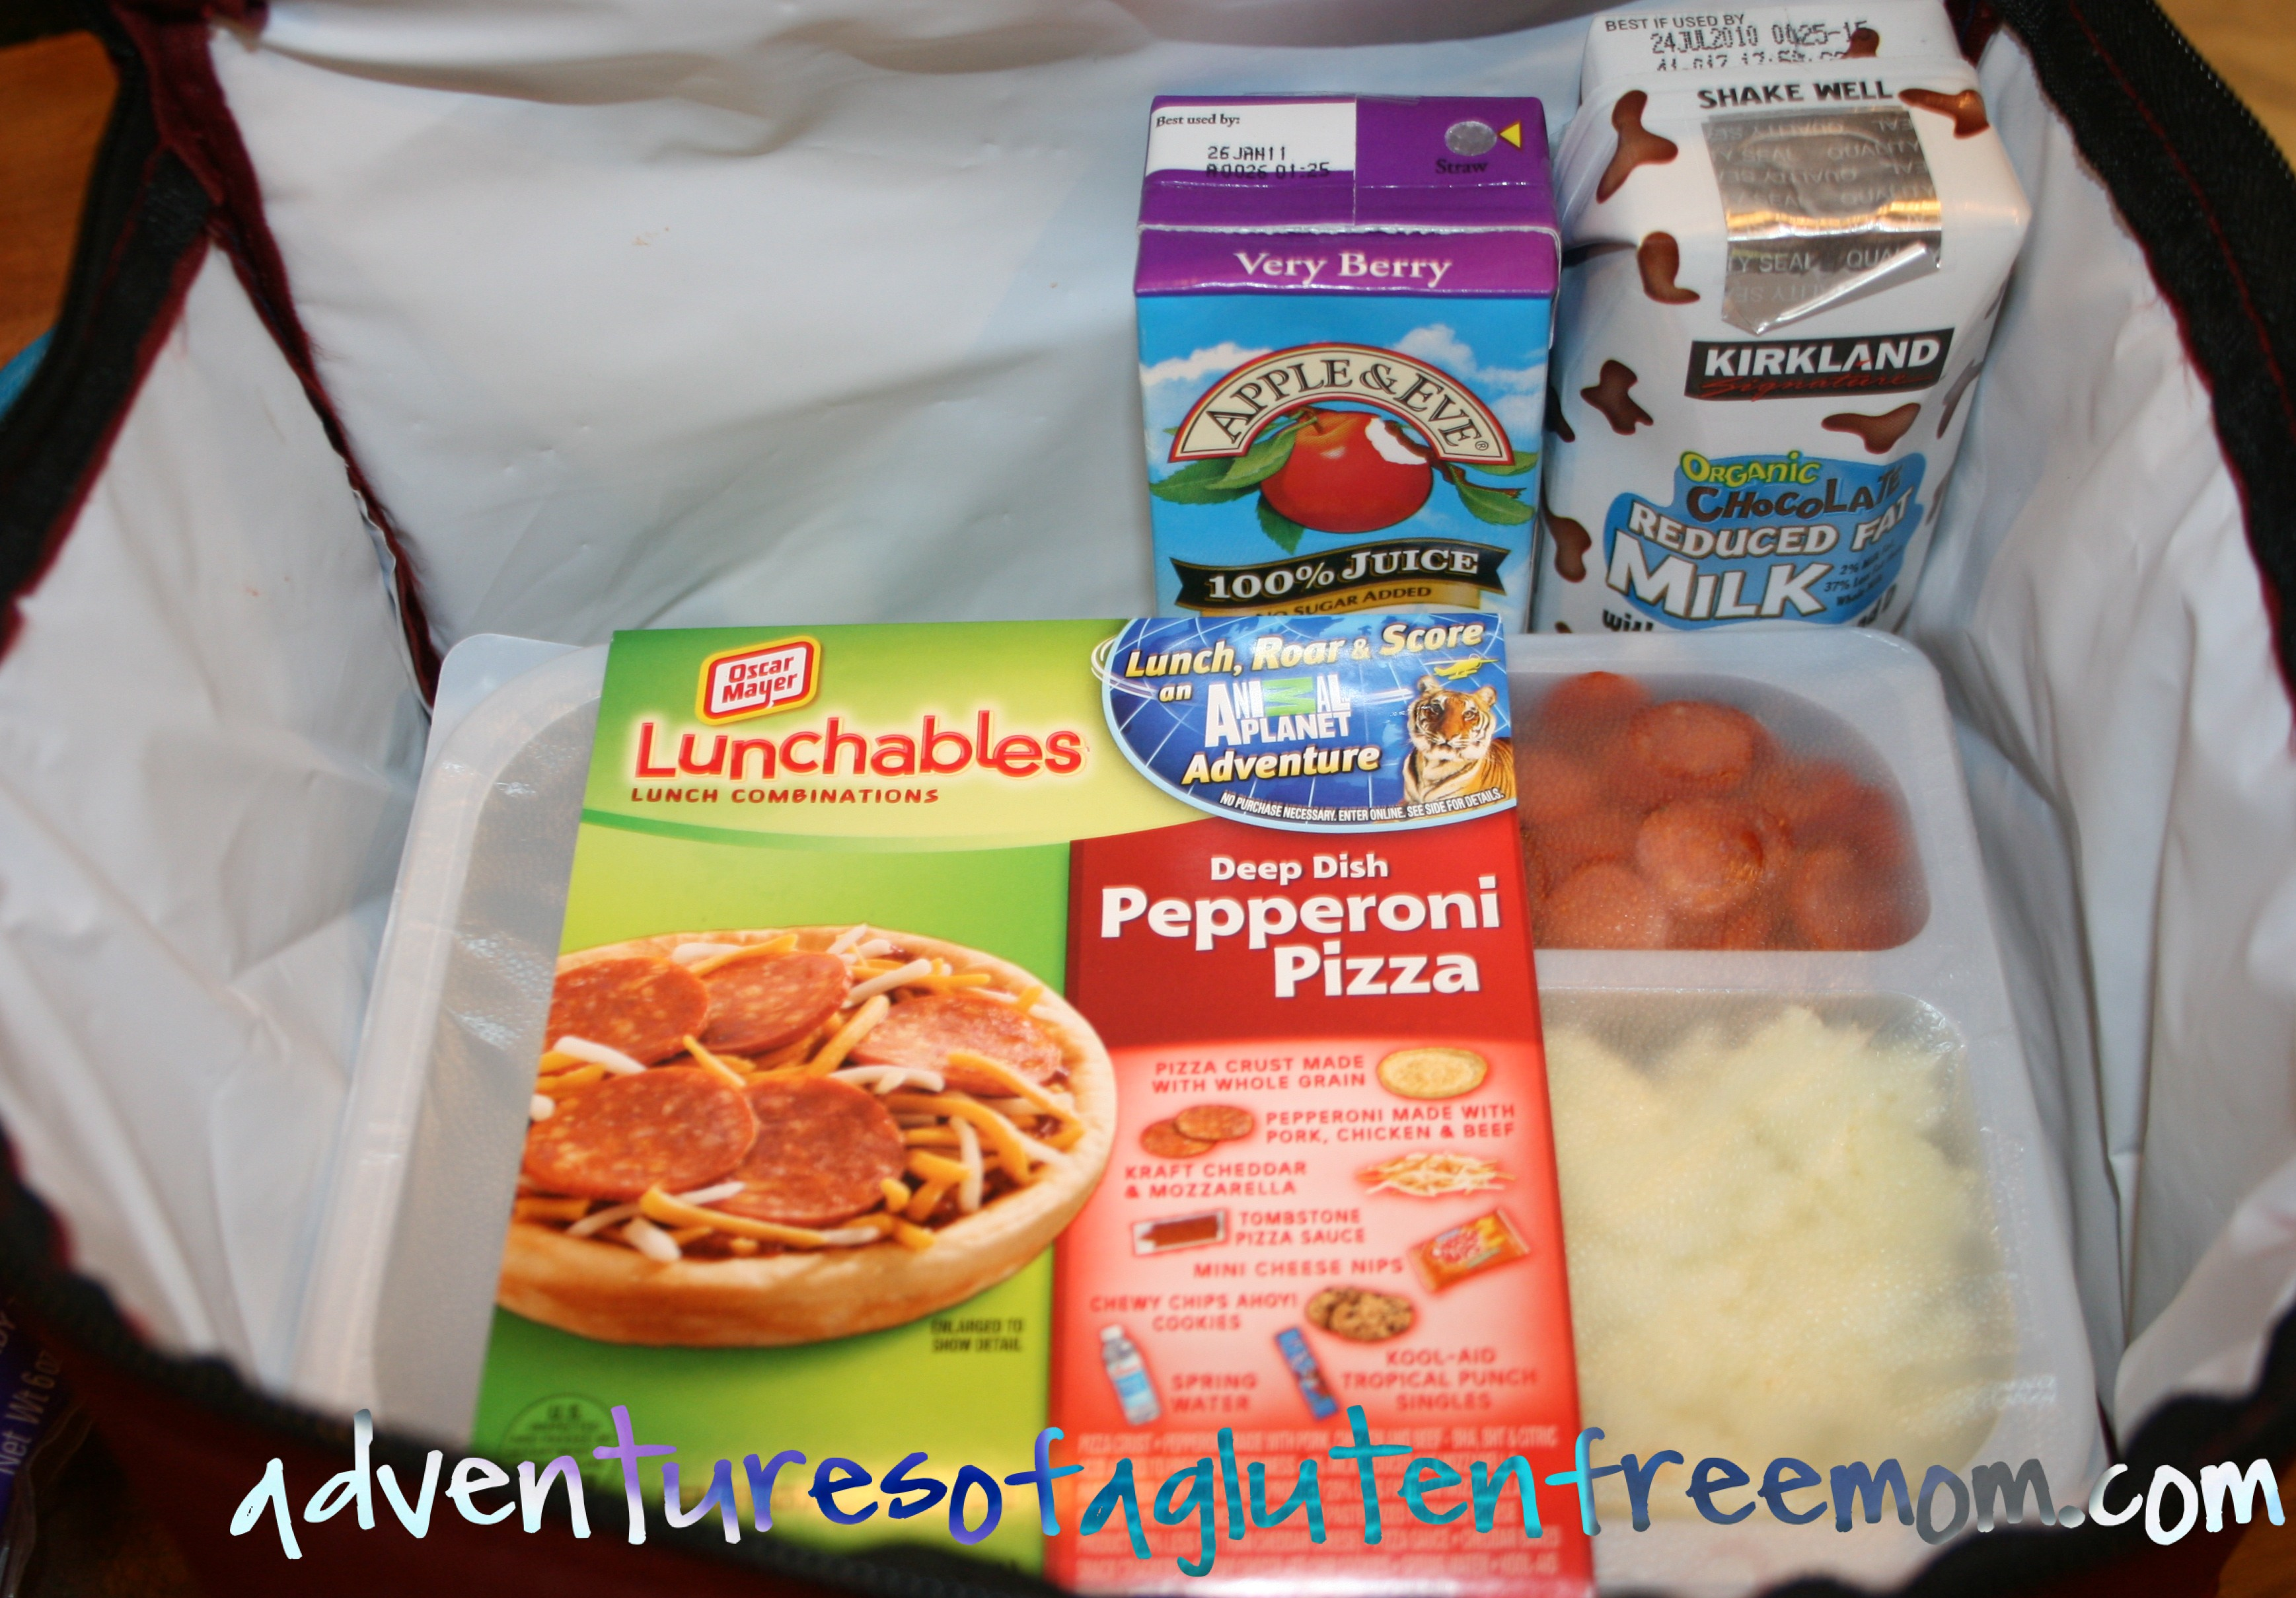 Oscar Mayer Lunchables Uploaded 6 Inch Ham American Sub Sandwich With Spring Water besides 322373 Neck Lift Procedure moreover Lunchables Uploaded Walking Taco Snacks Just 0 99 At Shoprite furthermore 281483 in addition 54003500. on are you uploaded lunchables